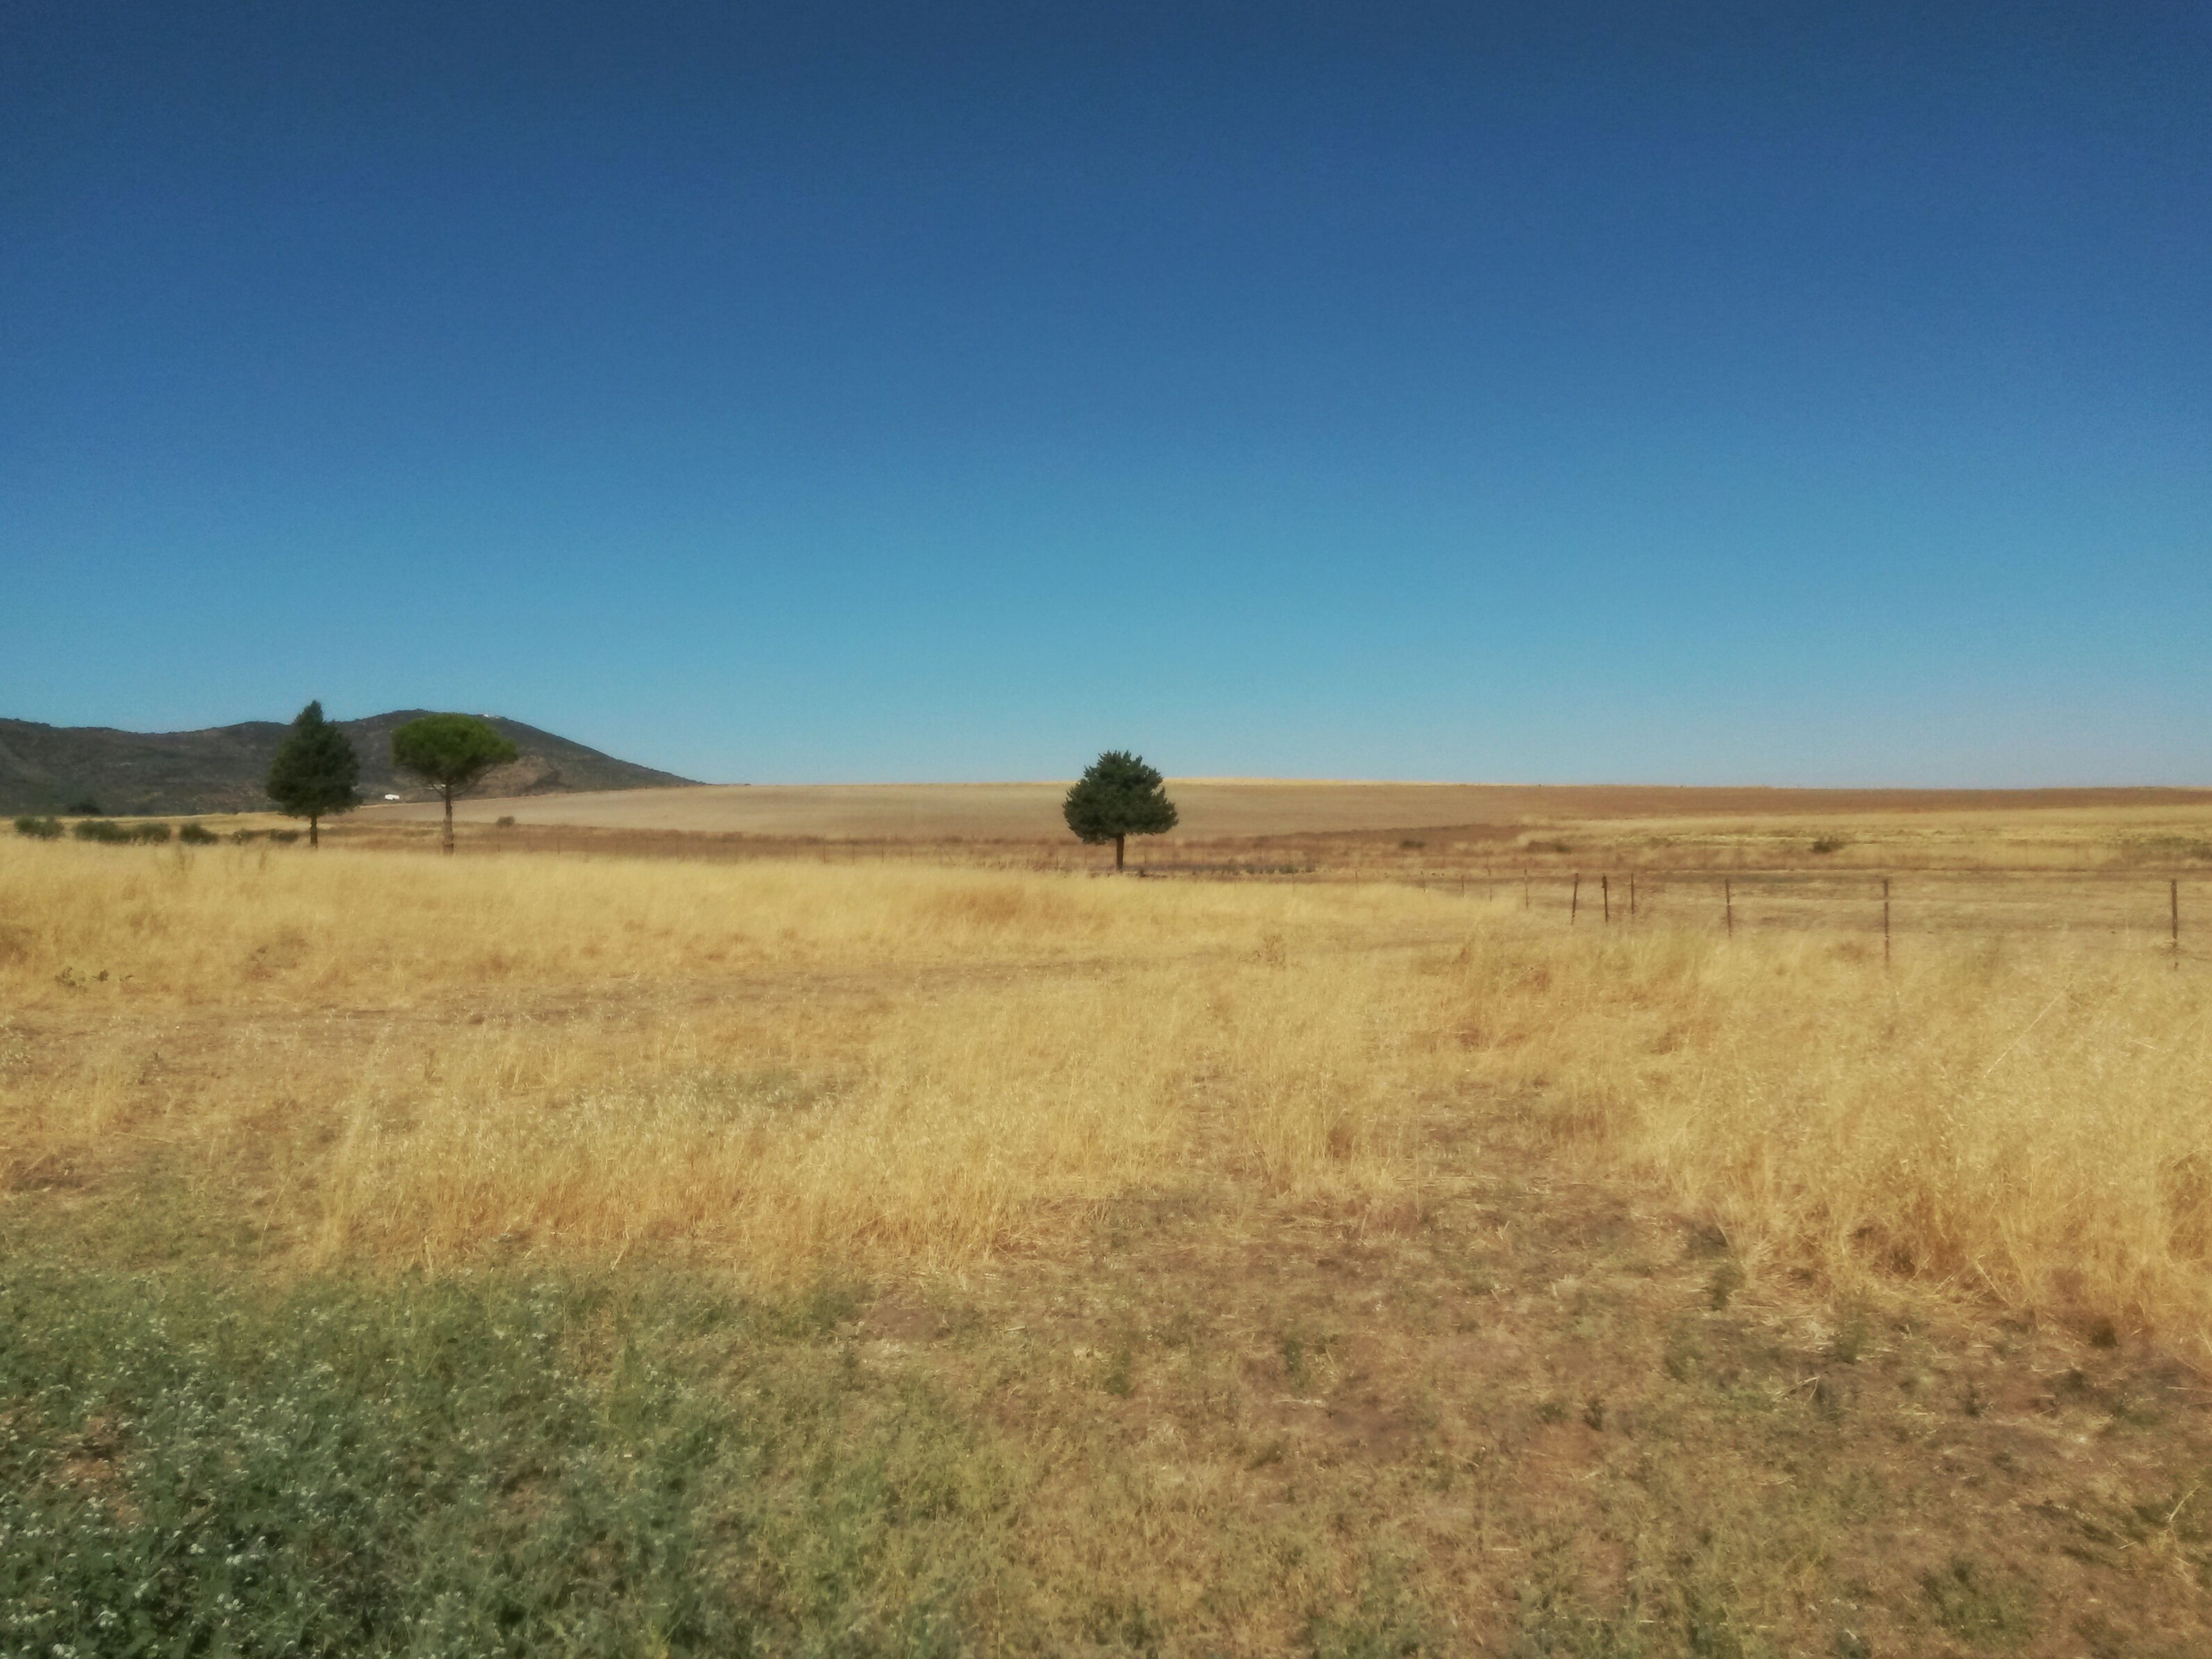 clear sky, copy space, landscape, blue, field, tranquility, tranquil scene, horizon over land, scenics, rural scene, agriculture, nature, outdoors, day, beauty in nature, farm, remote, no people, non-urban scene, solitude, distant, agricultural